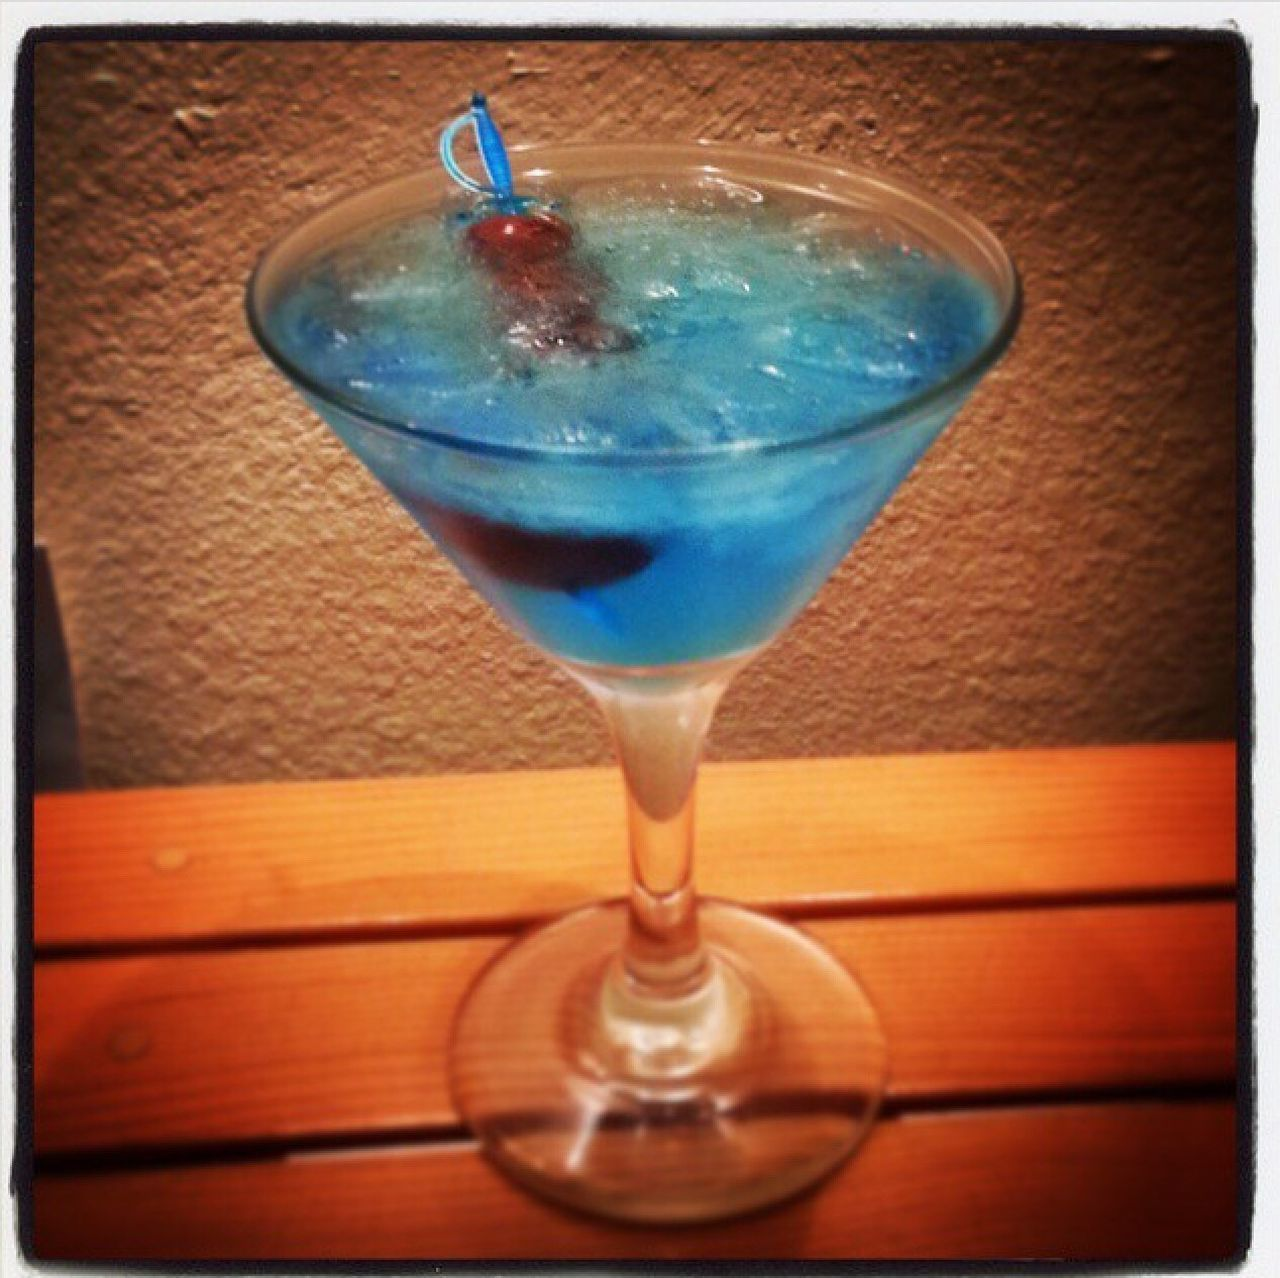 Blue Martini w/ Moonshine Cherries. Hand crafted concoction. Alcohol Cocktails Blue Martini Mixology Colorful Moonshine Cherries Fancy Focused Refreshing Chilled Drink Homemade Drunk In Love